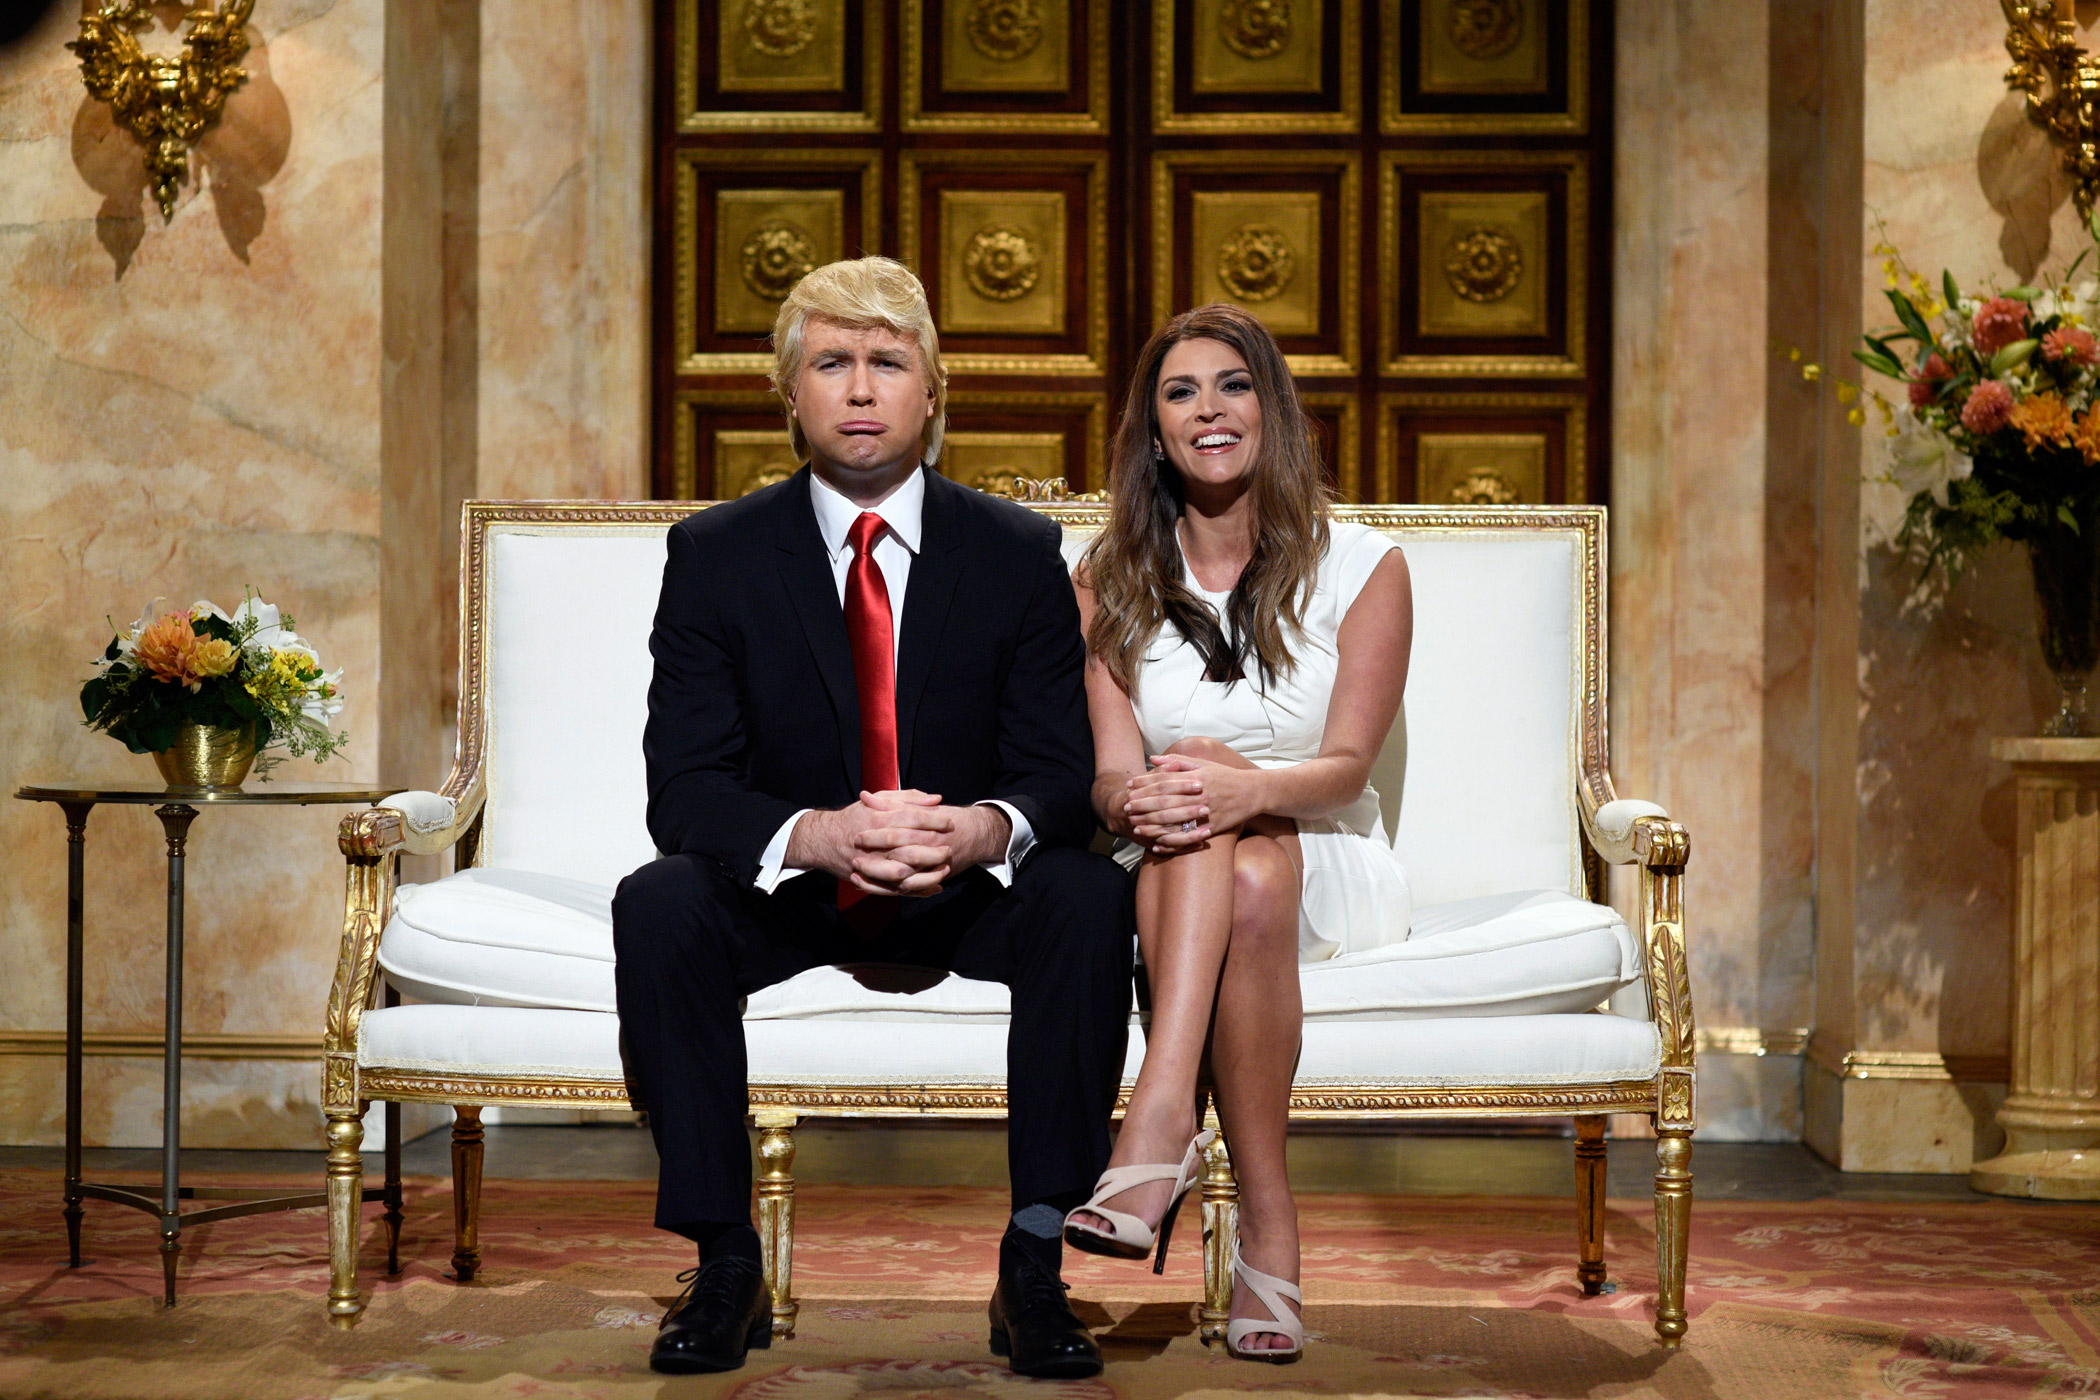 Comedians Taran Killam, as Donald Trump, and Cecily Strong, as Melania Trump, appeared in the sketch 'Trump Cold Open' on Oct. 3, 2015.